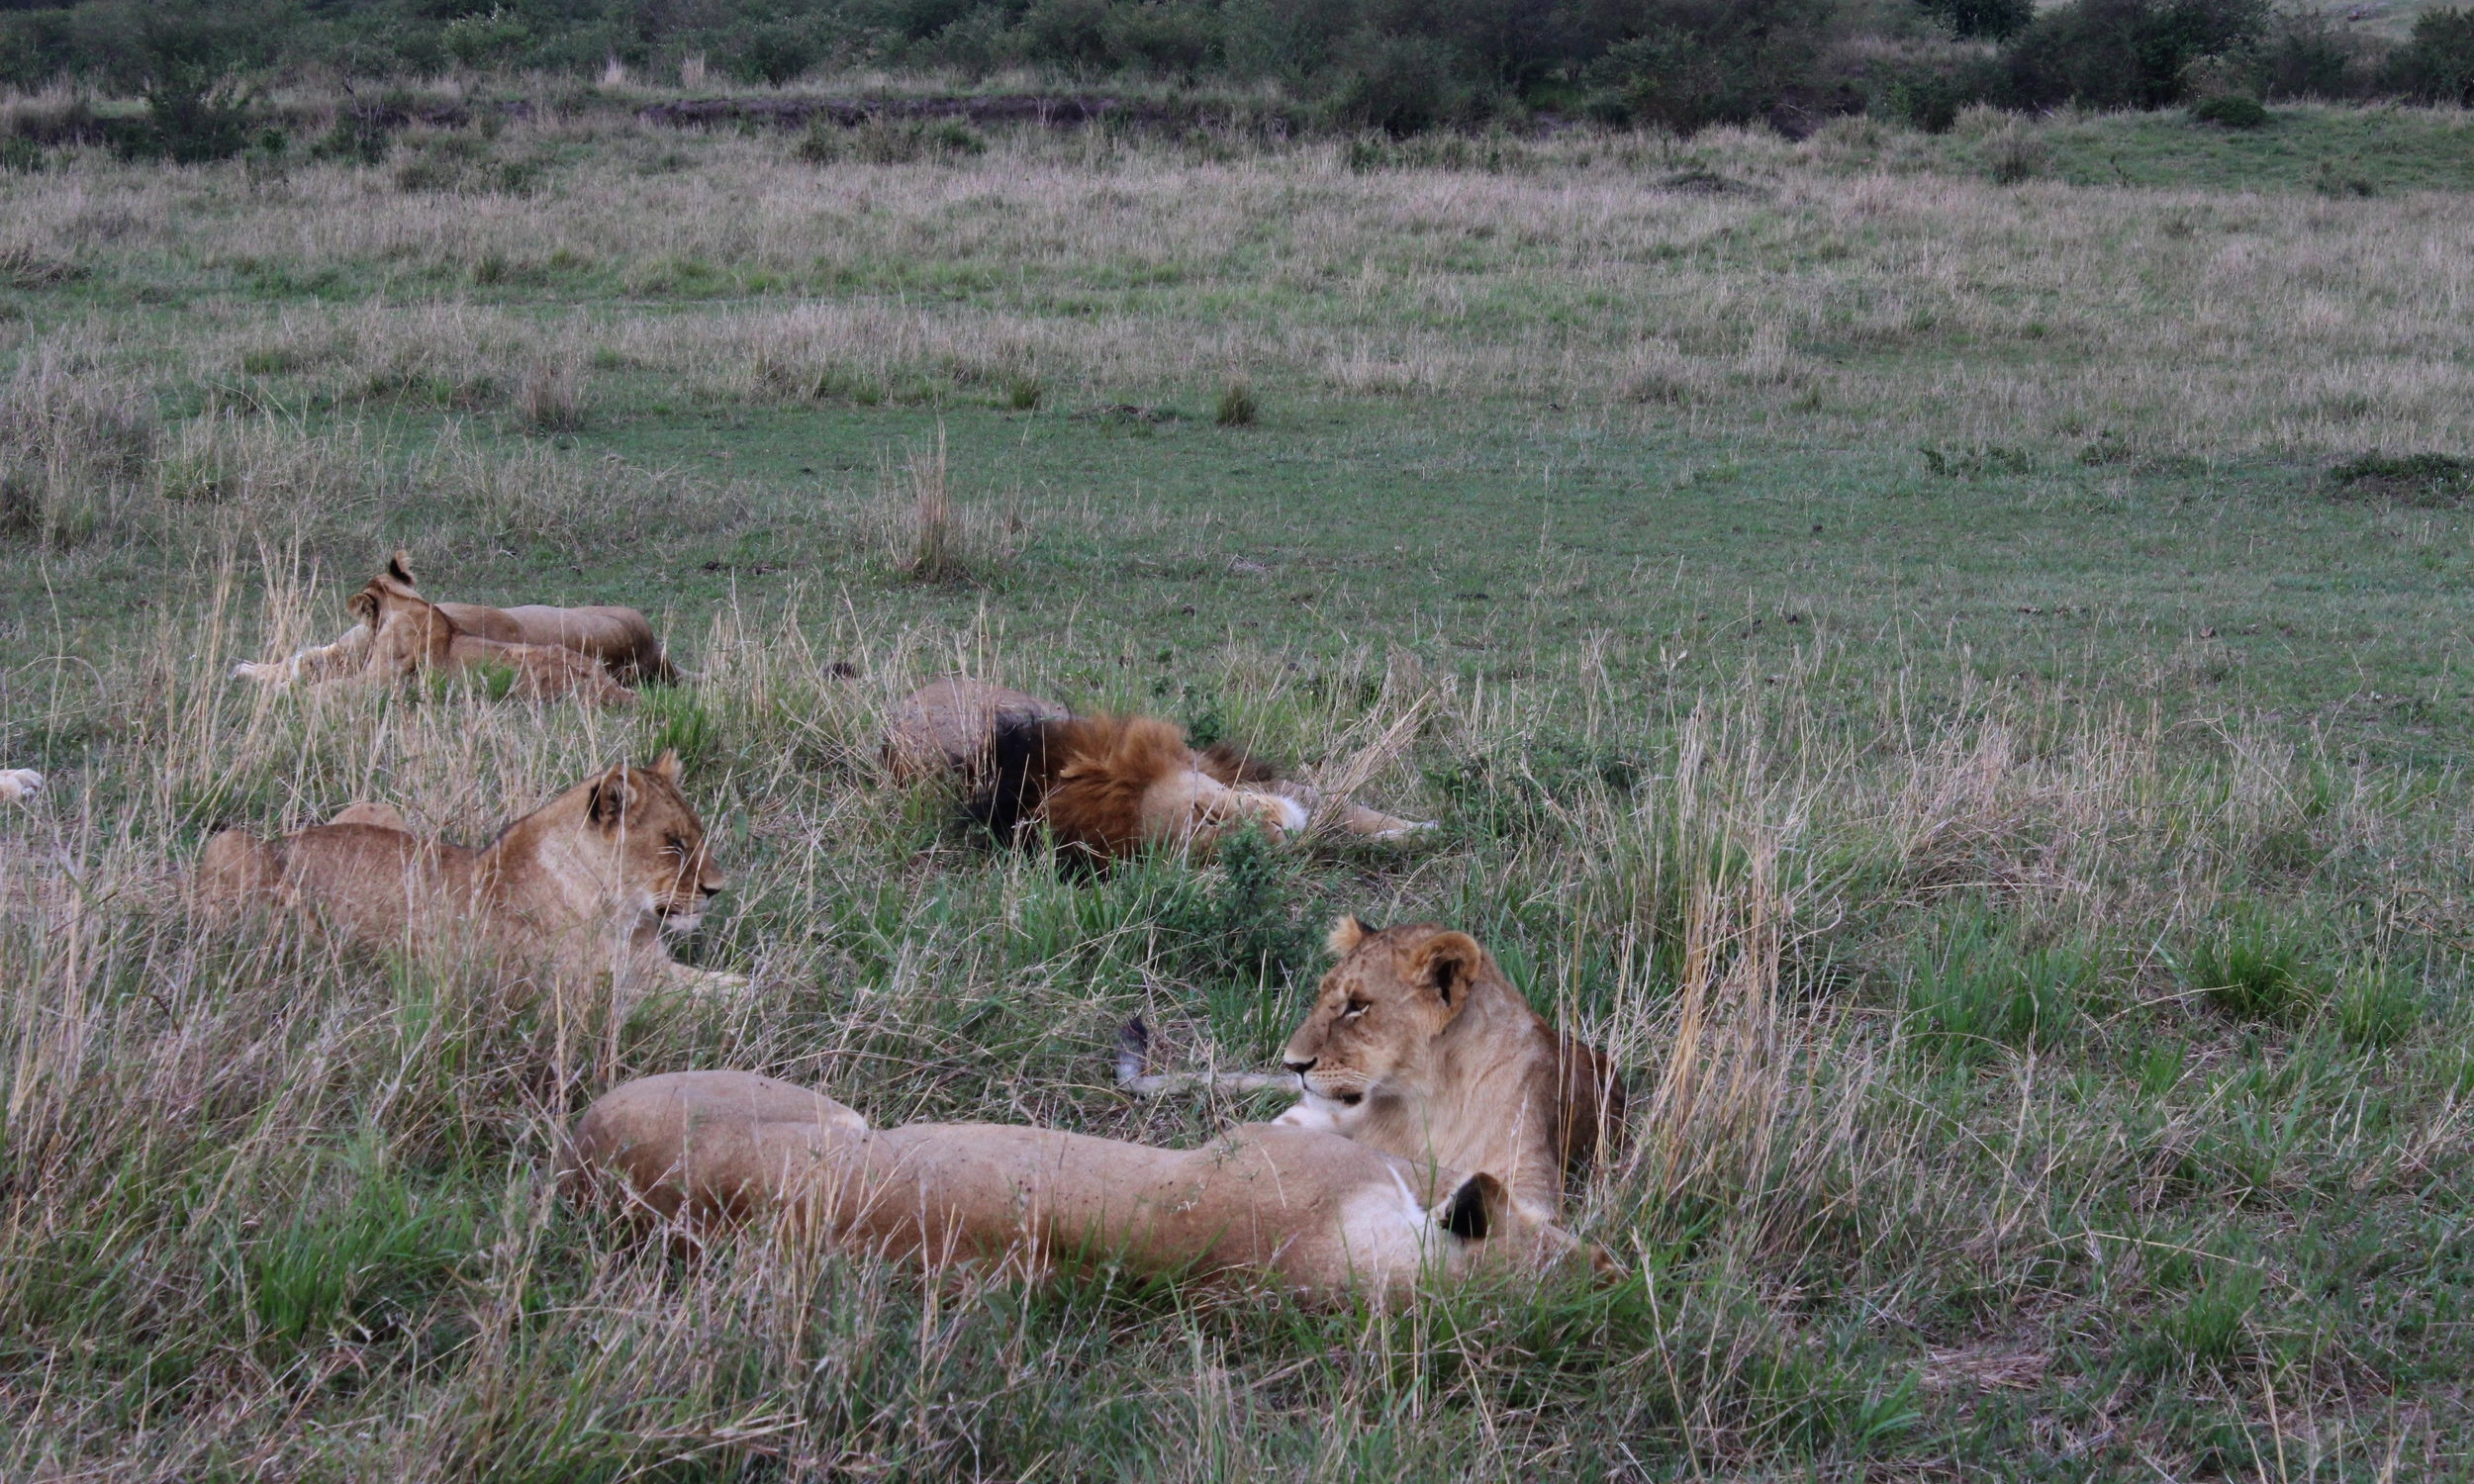 Lions lounging